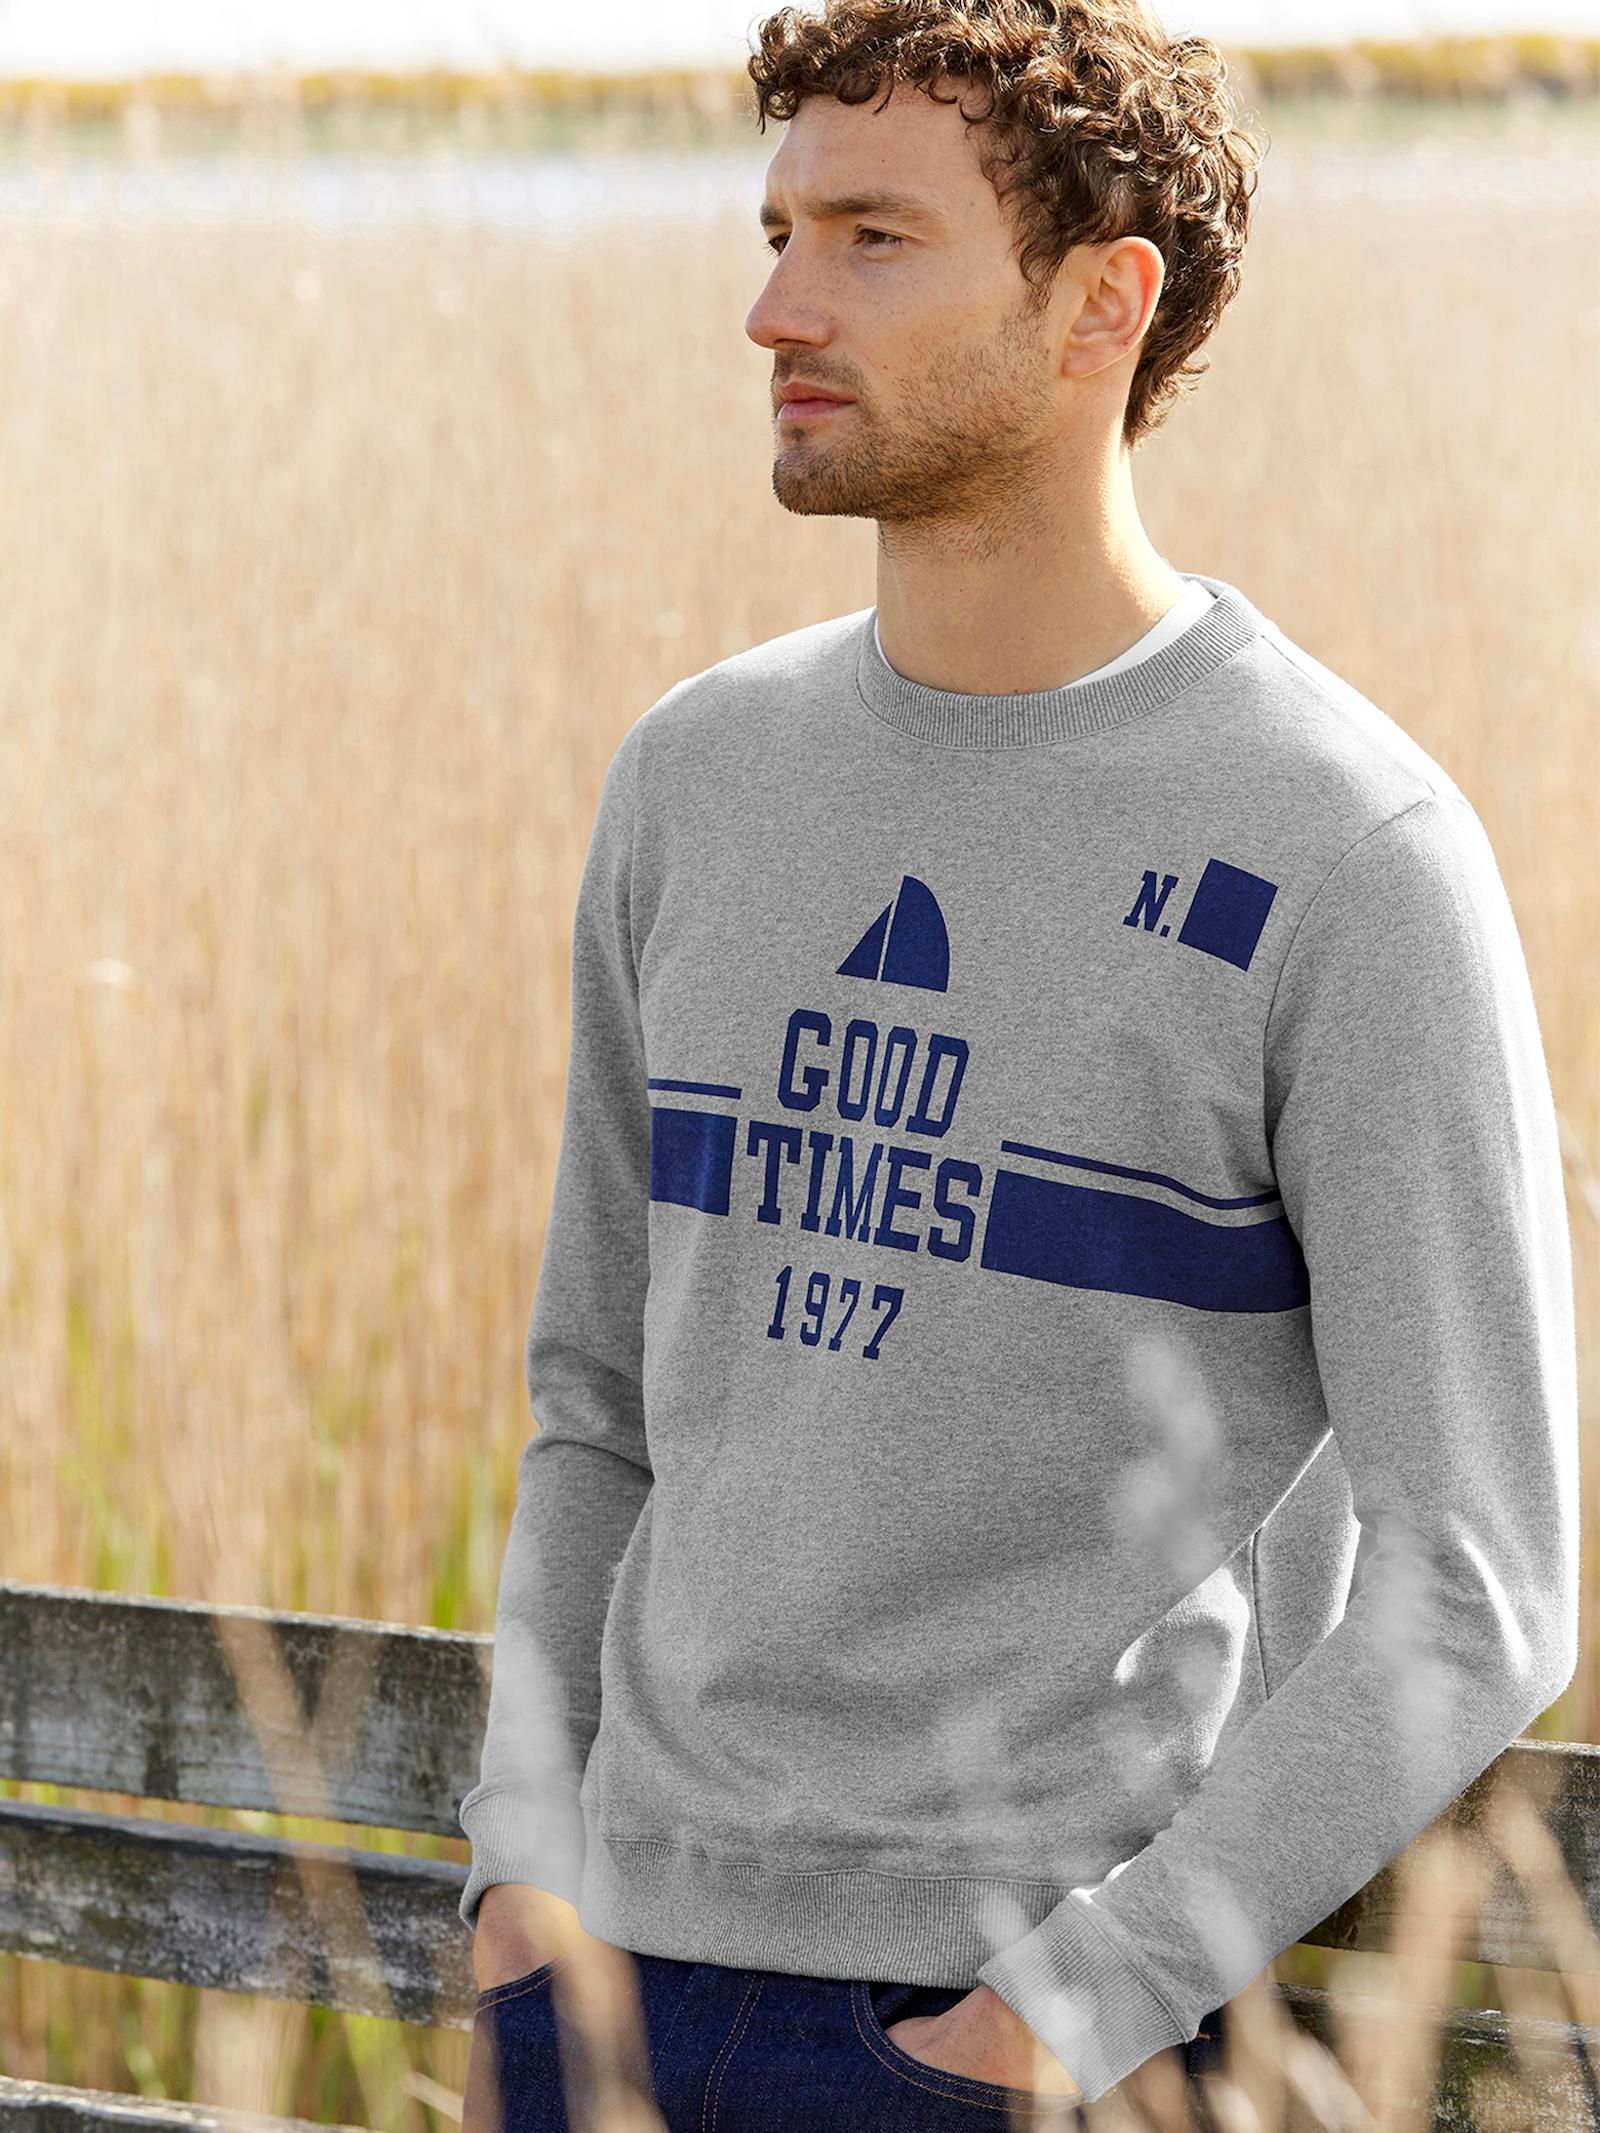 Sweat homme Collection Good Times 1977 gris chiné, Homme